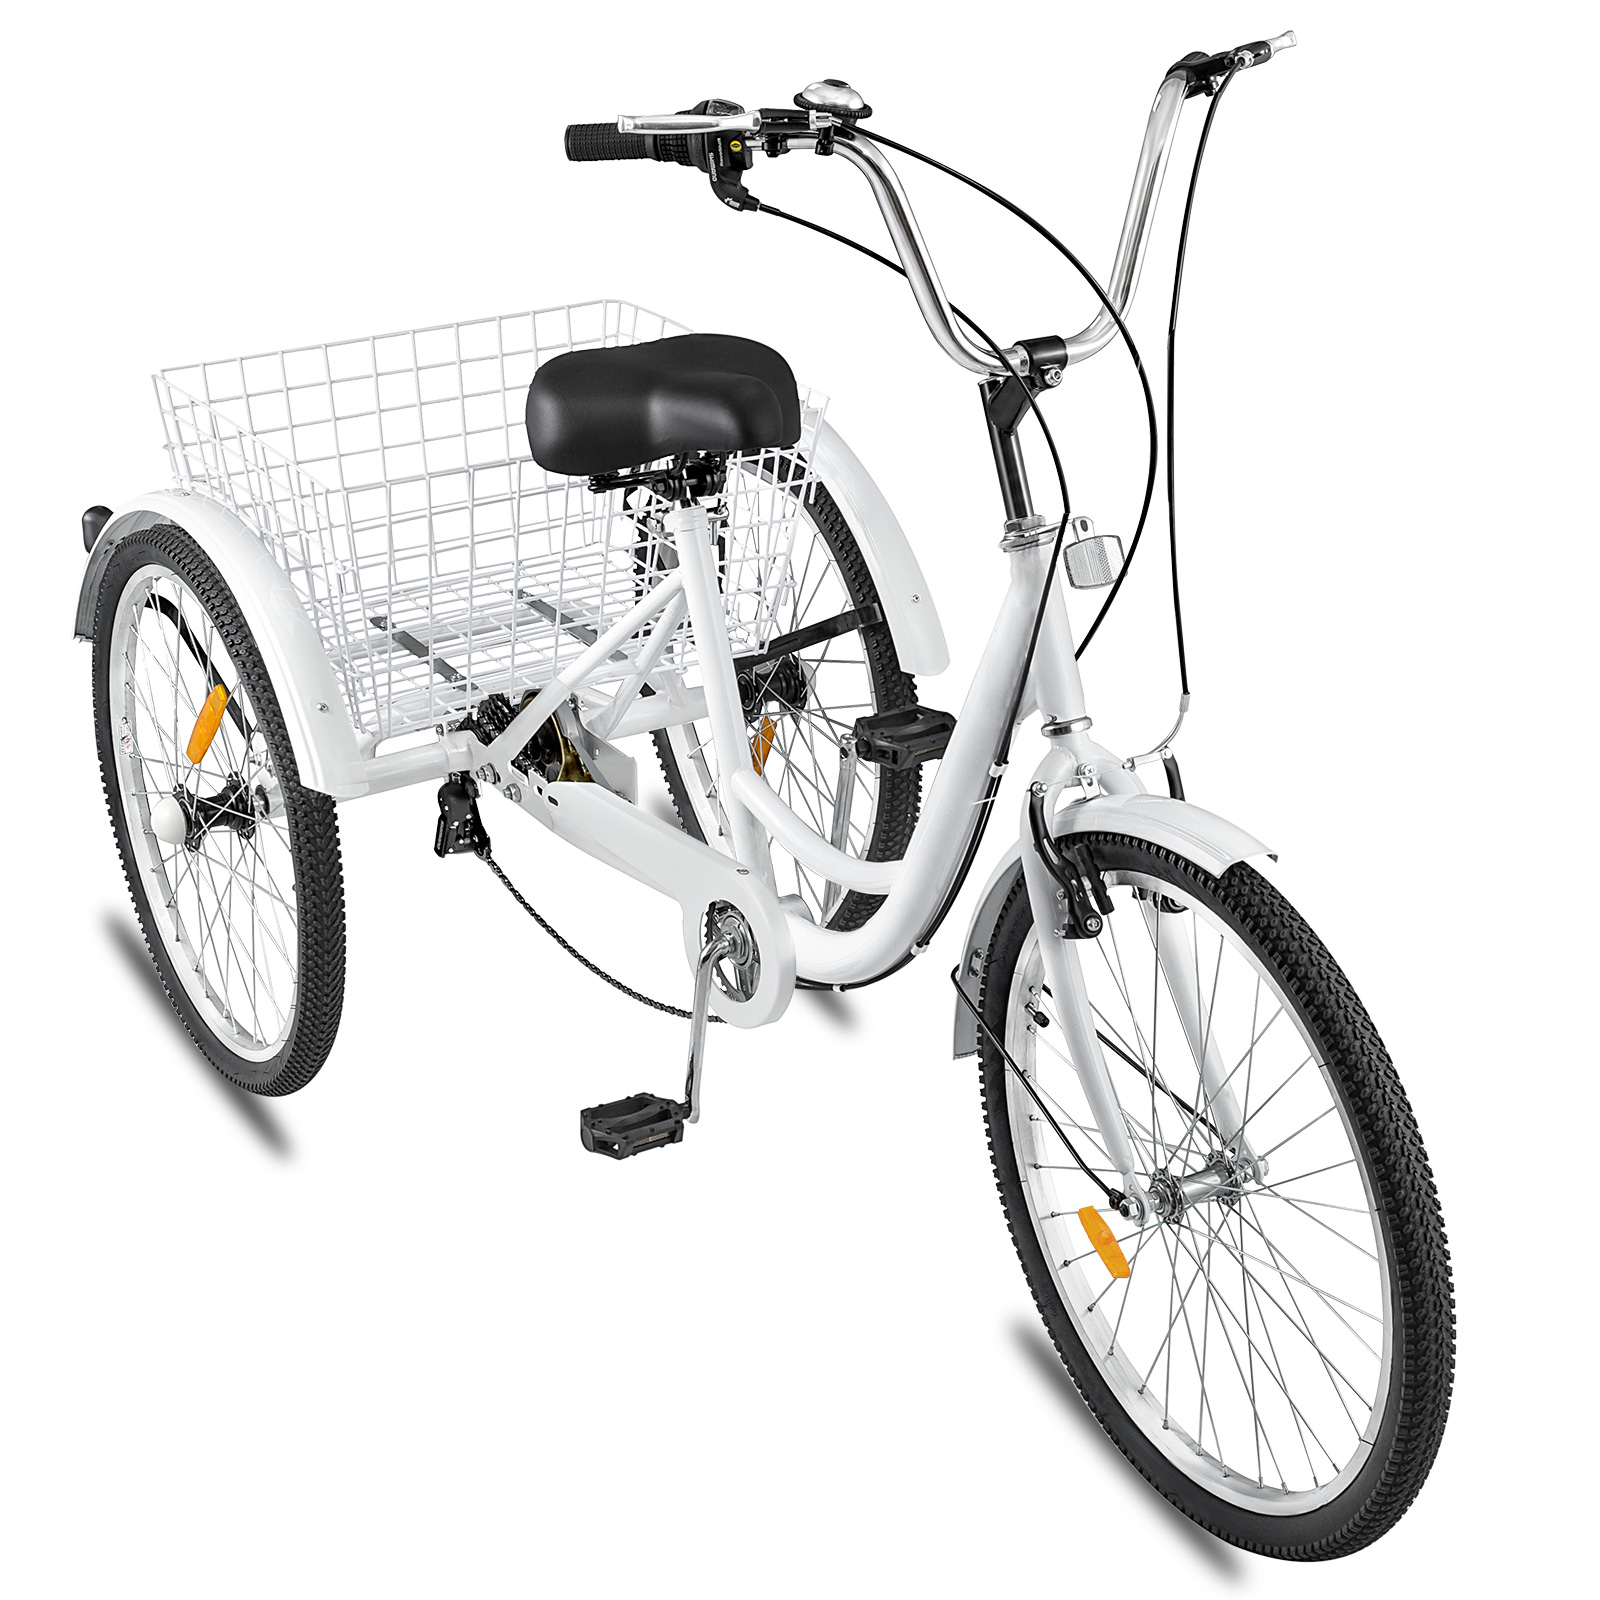 20-24-26-034-Adult-Tricycle-1-7-Speed-3-Wheel-Large-Basket-For-Shopping-Optional thumbnail 93